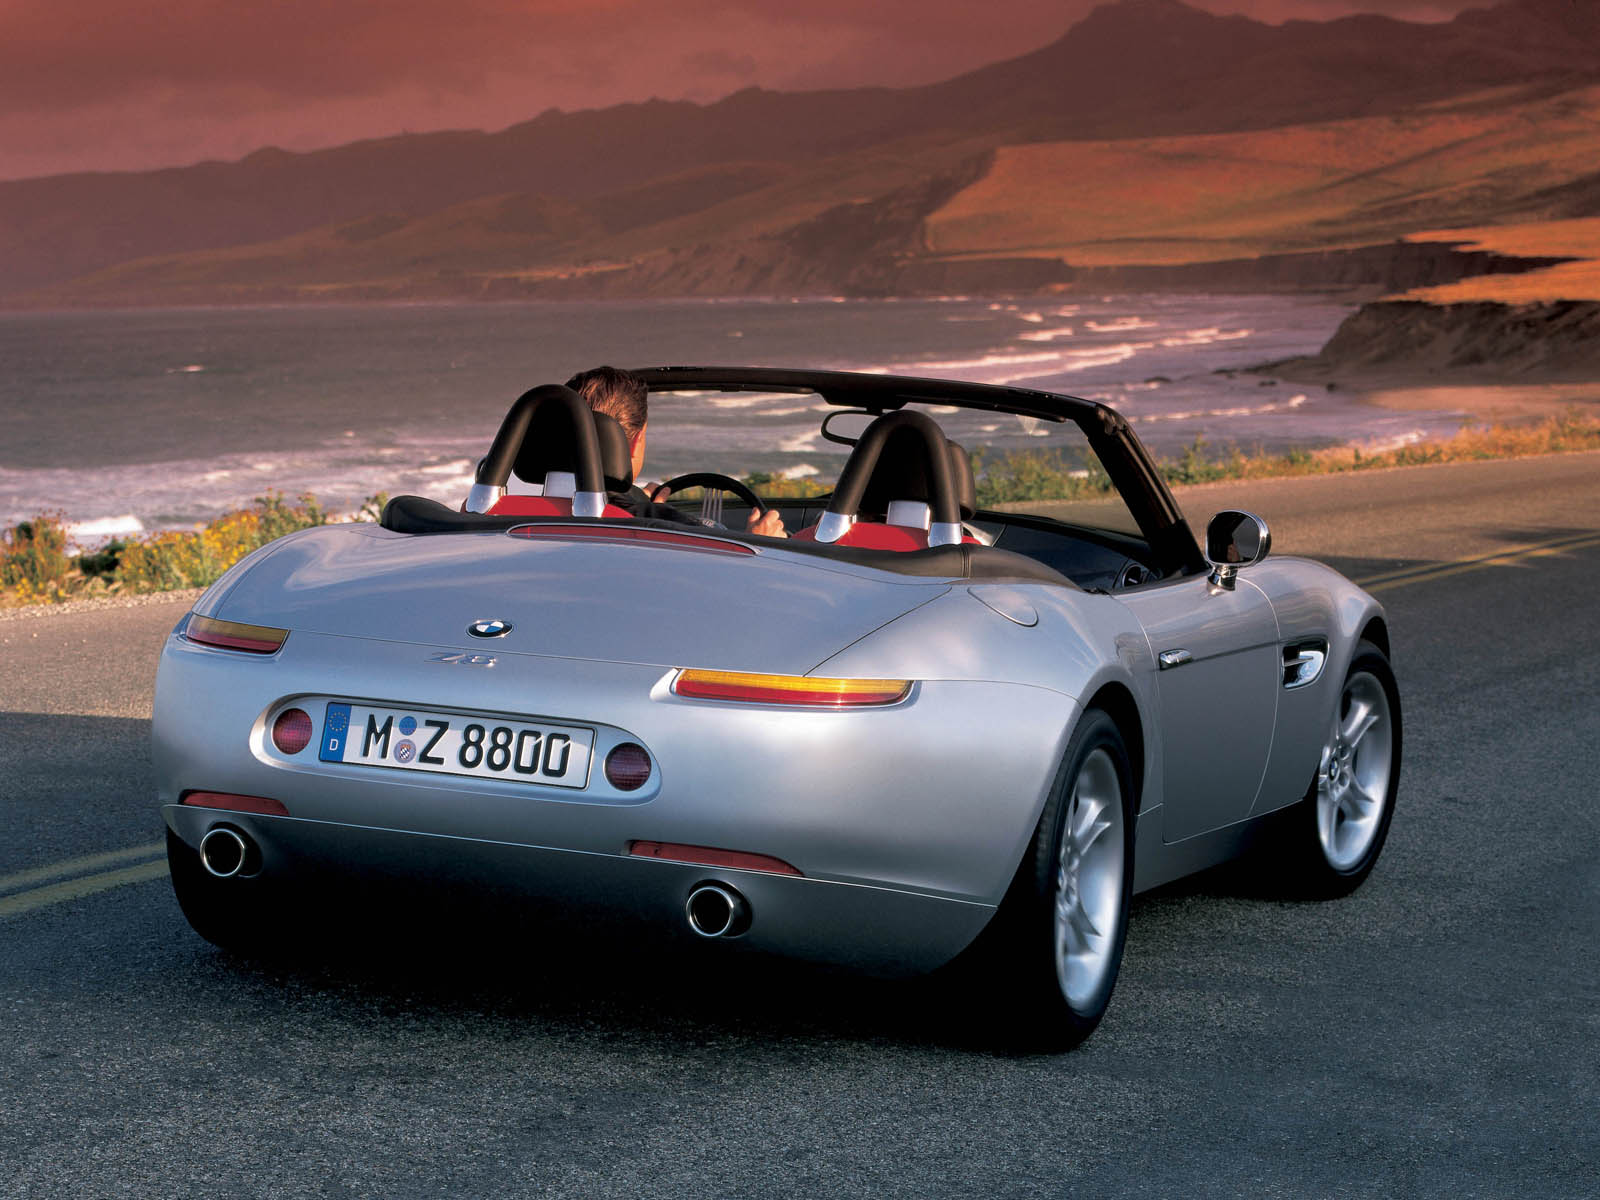 Bmw Z8 Photos Photogallery With 38 Pics Carsbase Com